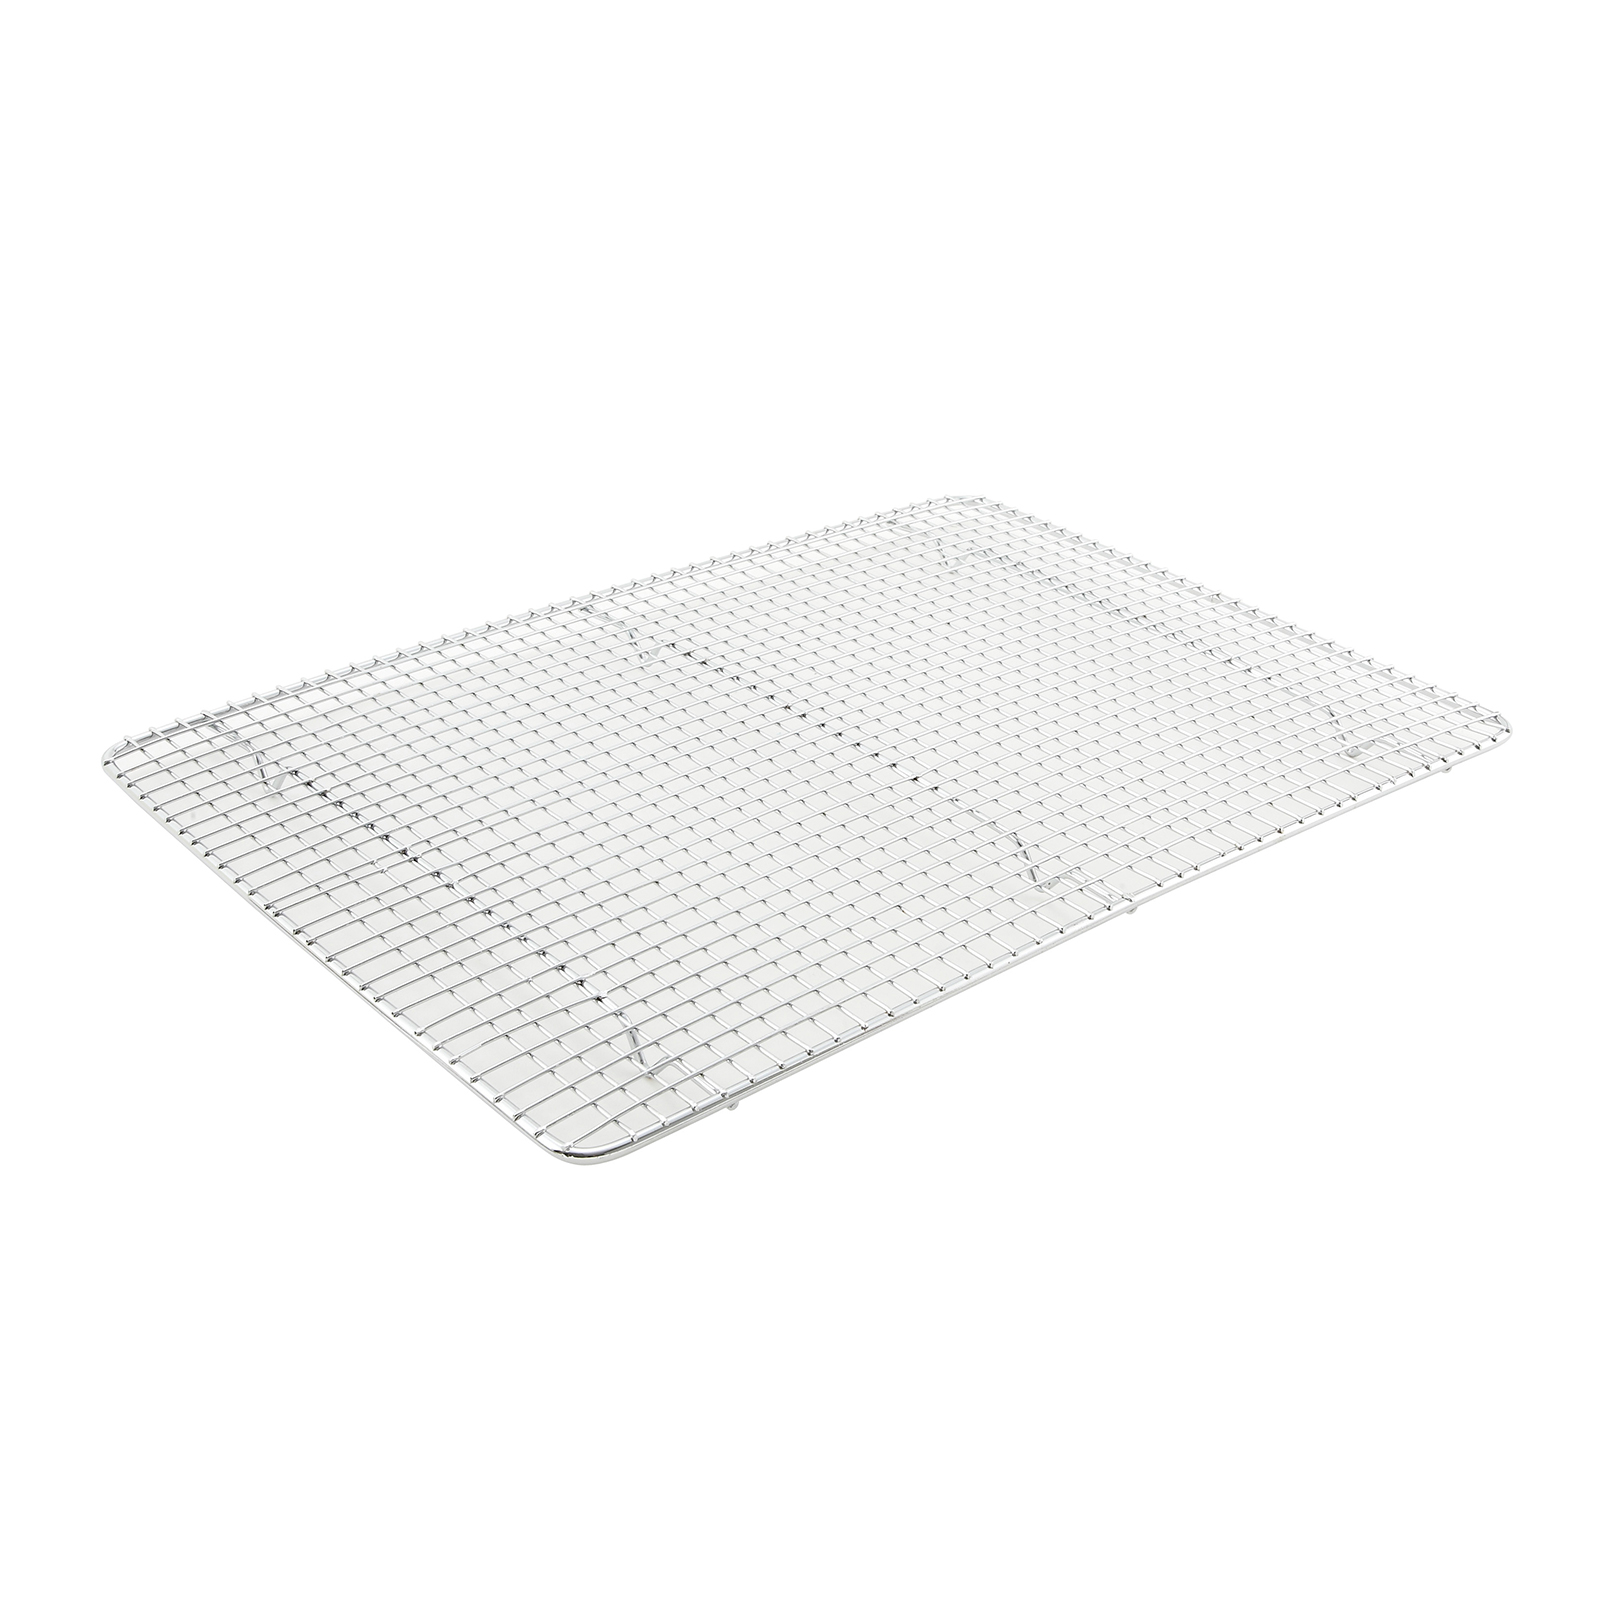 Winco PGW-1216 wire pan rack / grate